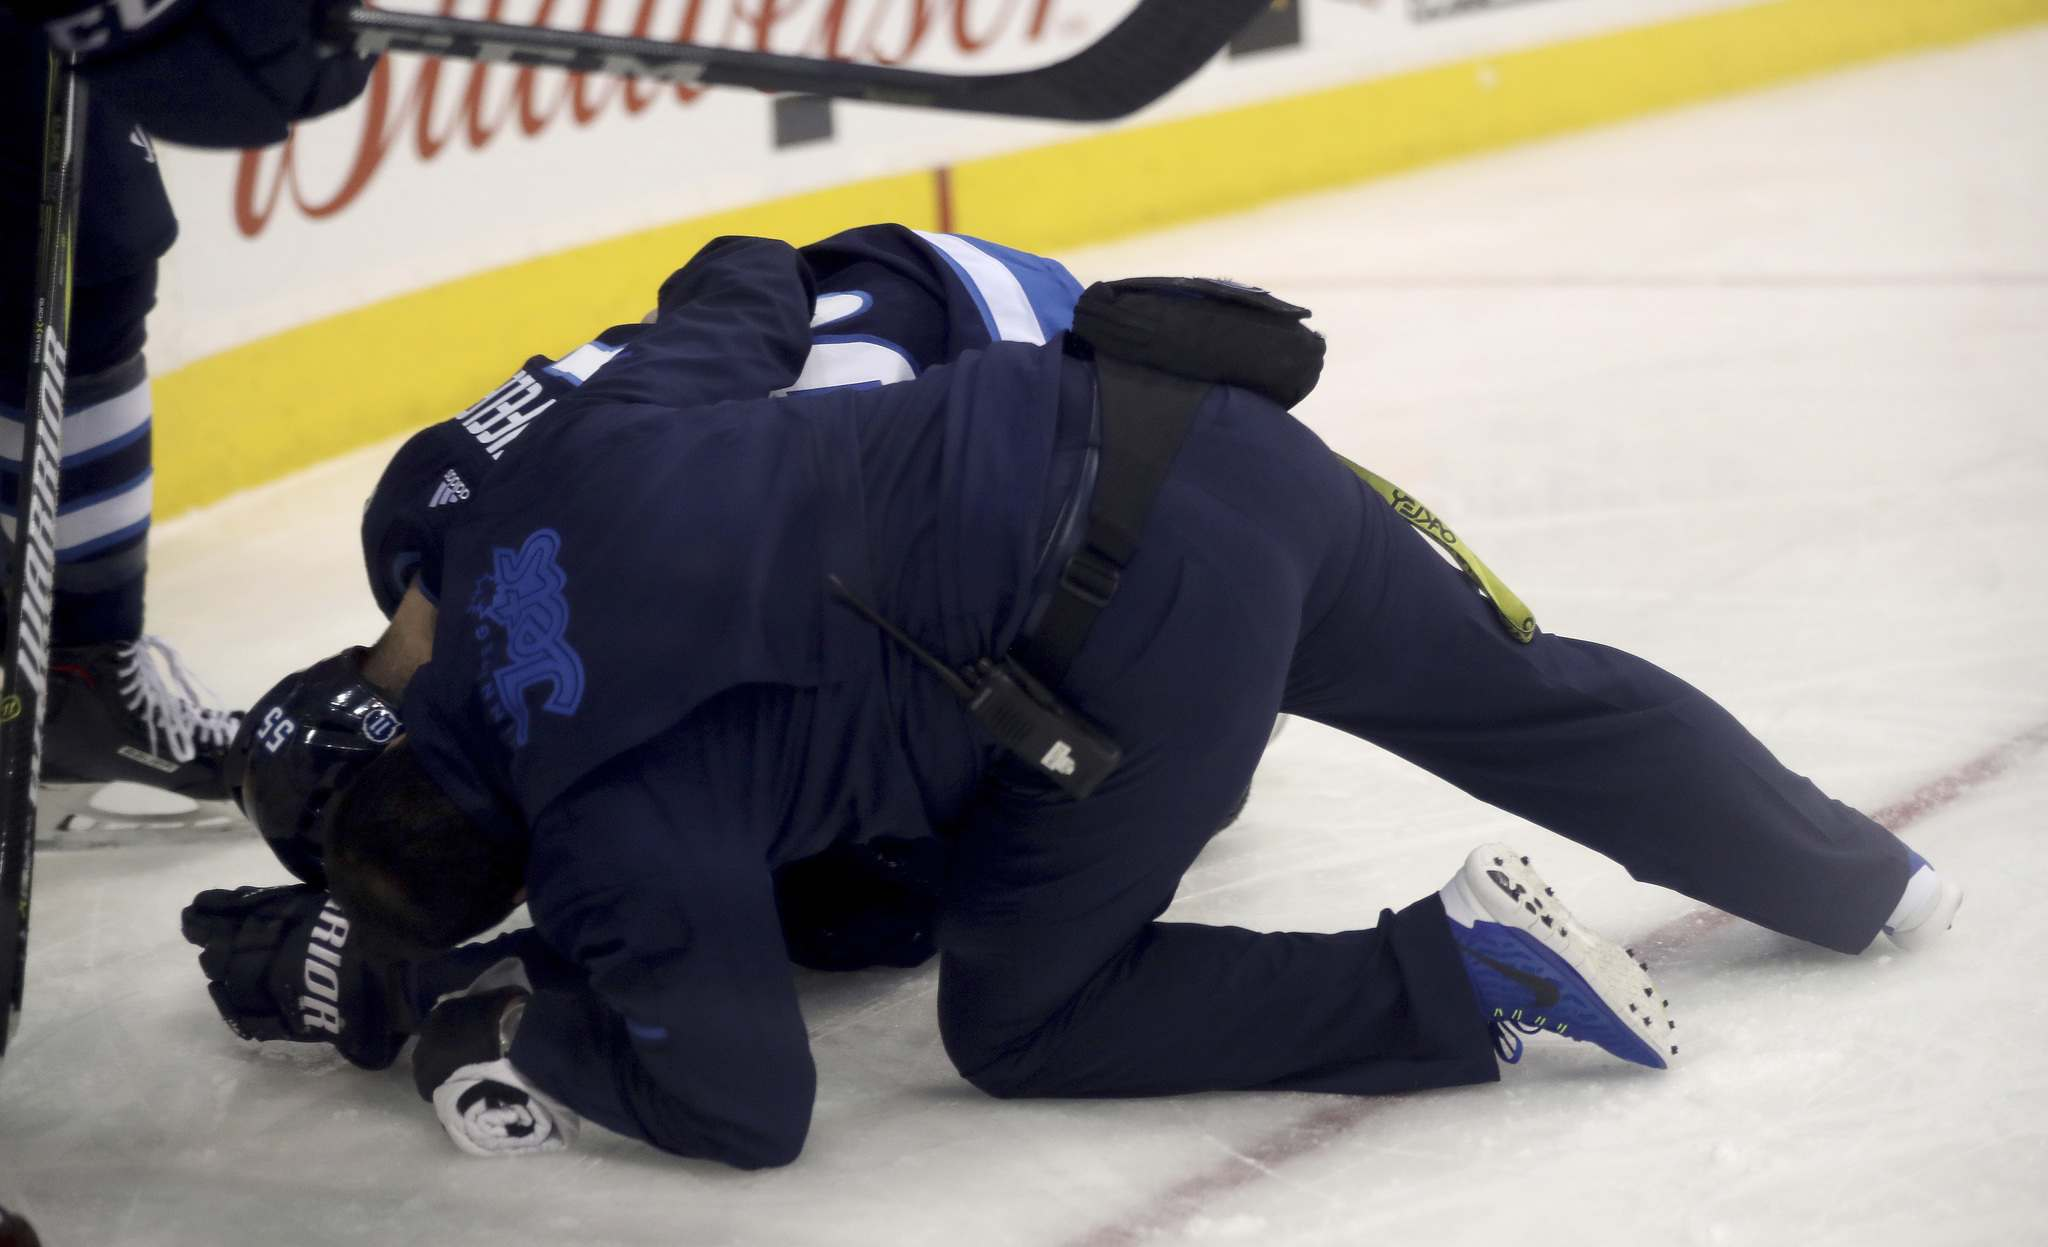 Winnipeg Jets practice Thursday - what's the word on Mark Scheifele